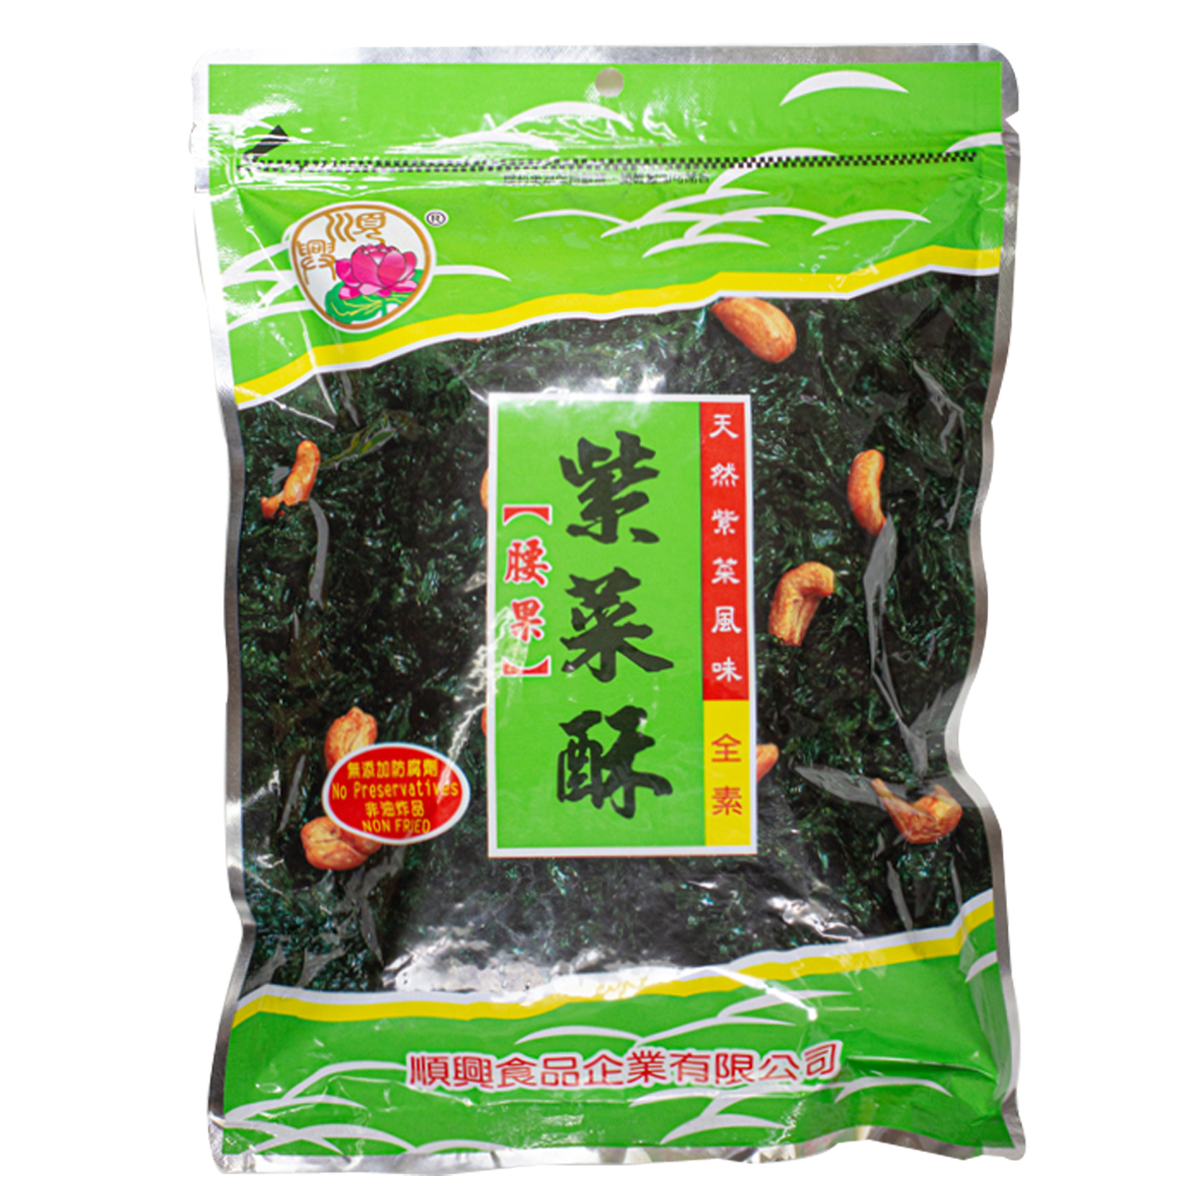 Image Roasted Seaweed 顺兴-腰果紫菜酥 100grams